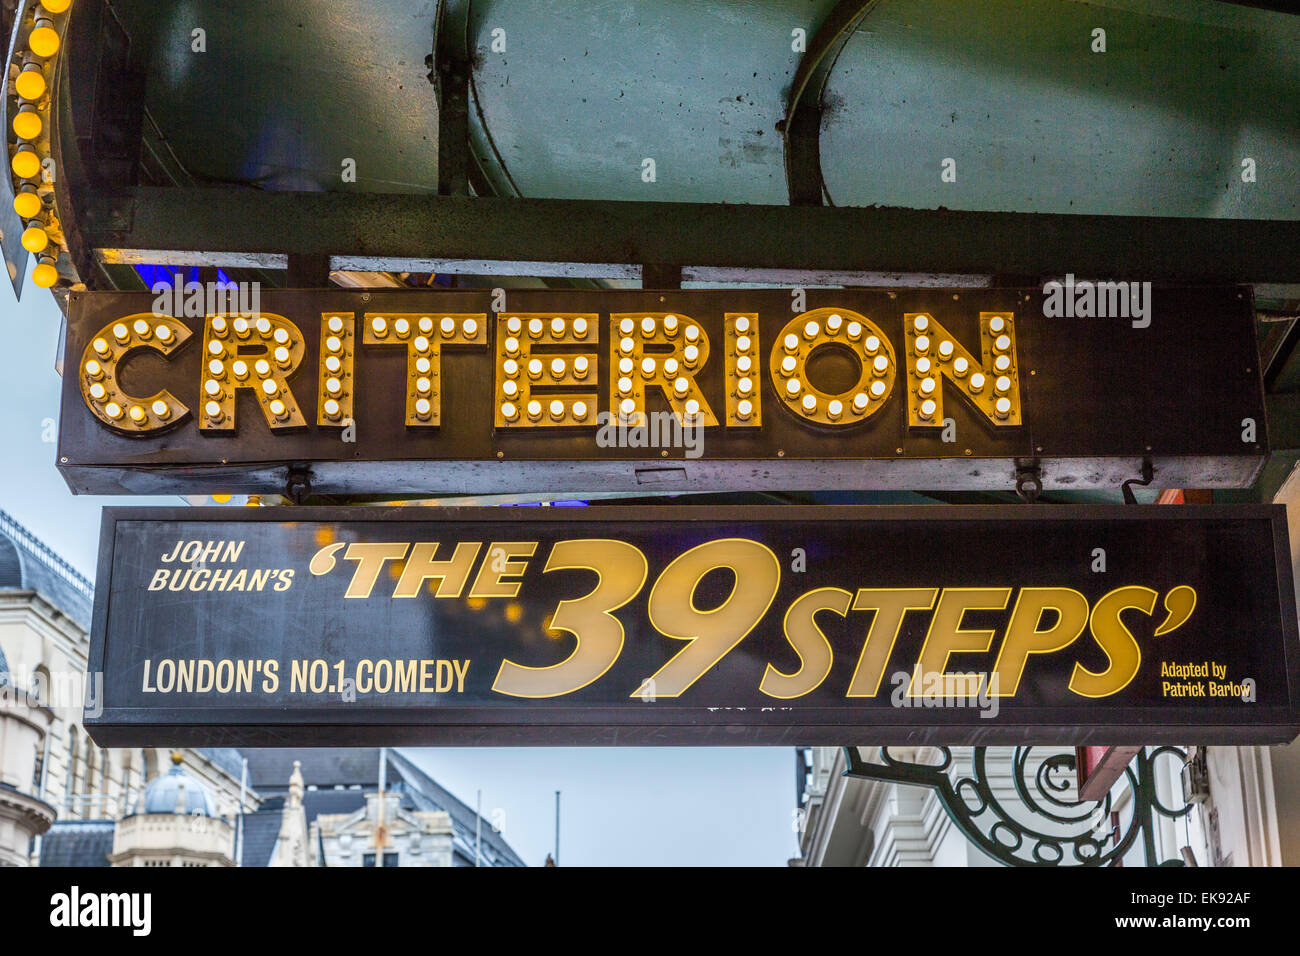 The Criterion Theatre The 39 Steps Piccadilly Circus Westminster London - Stock Image